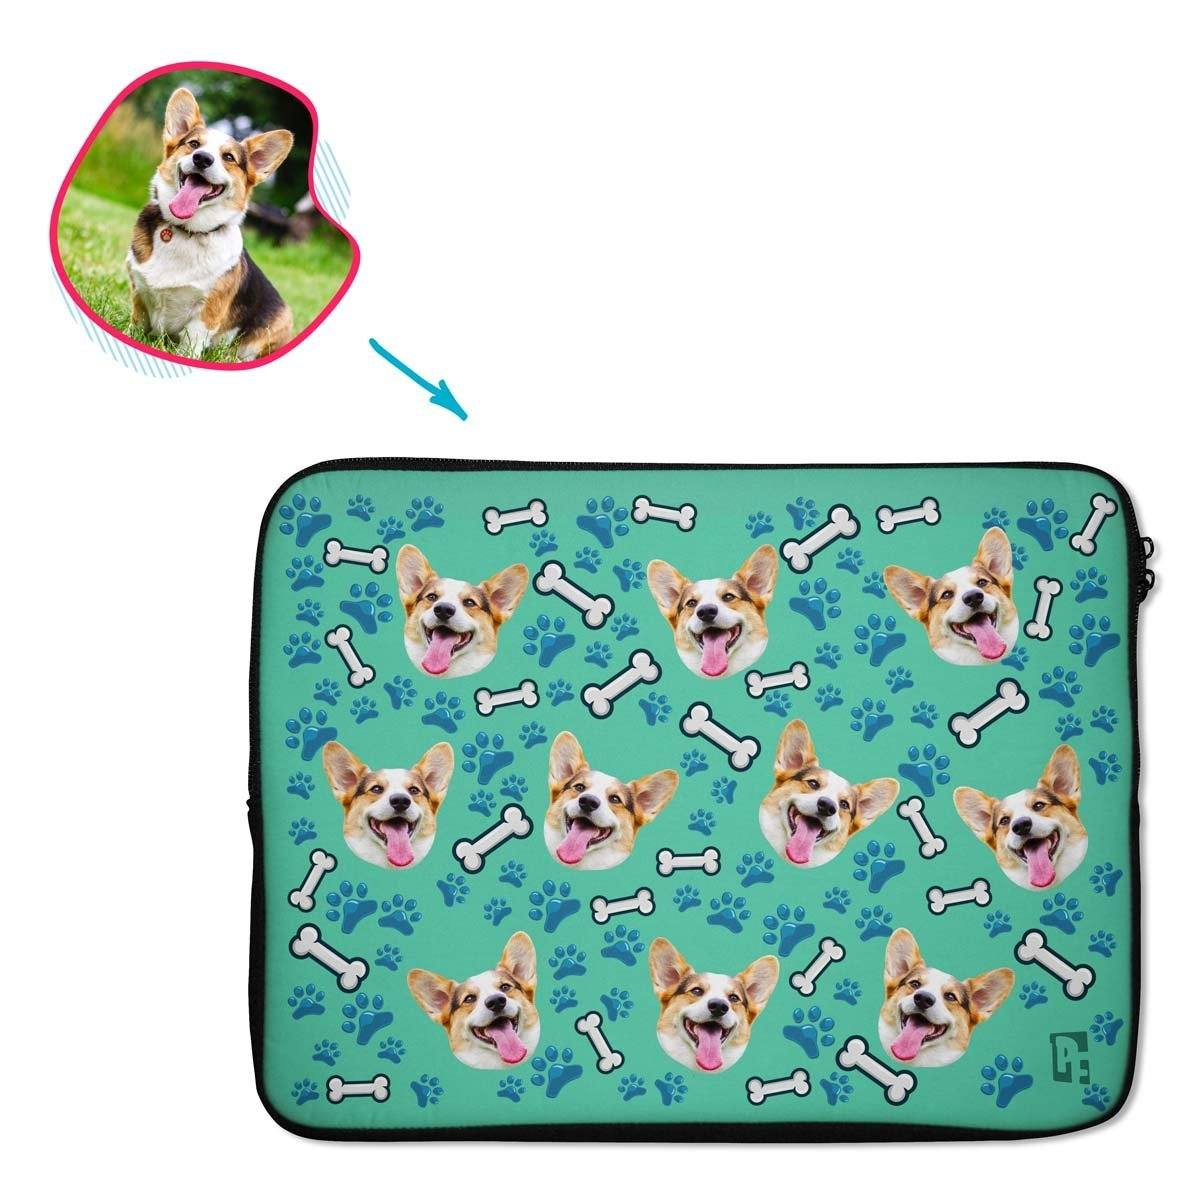 mint Dog laptop sleeve personalized with photo of face printed on them